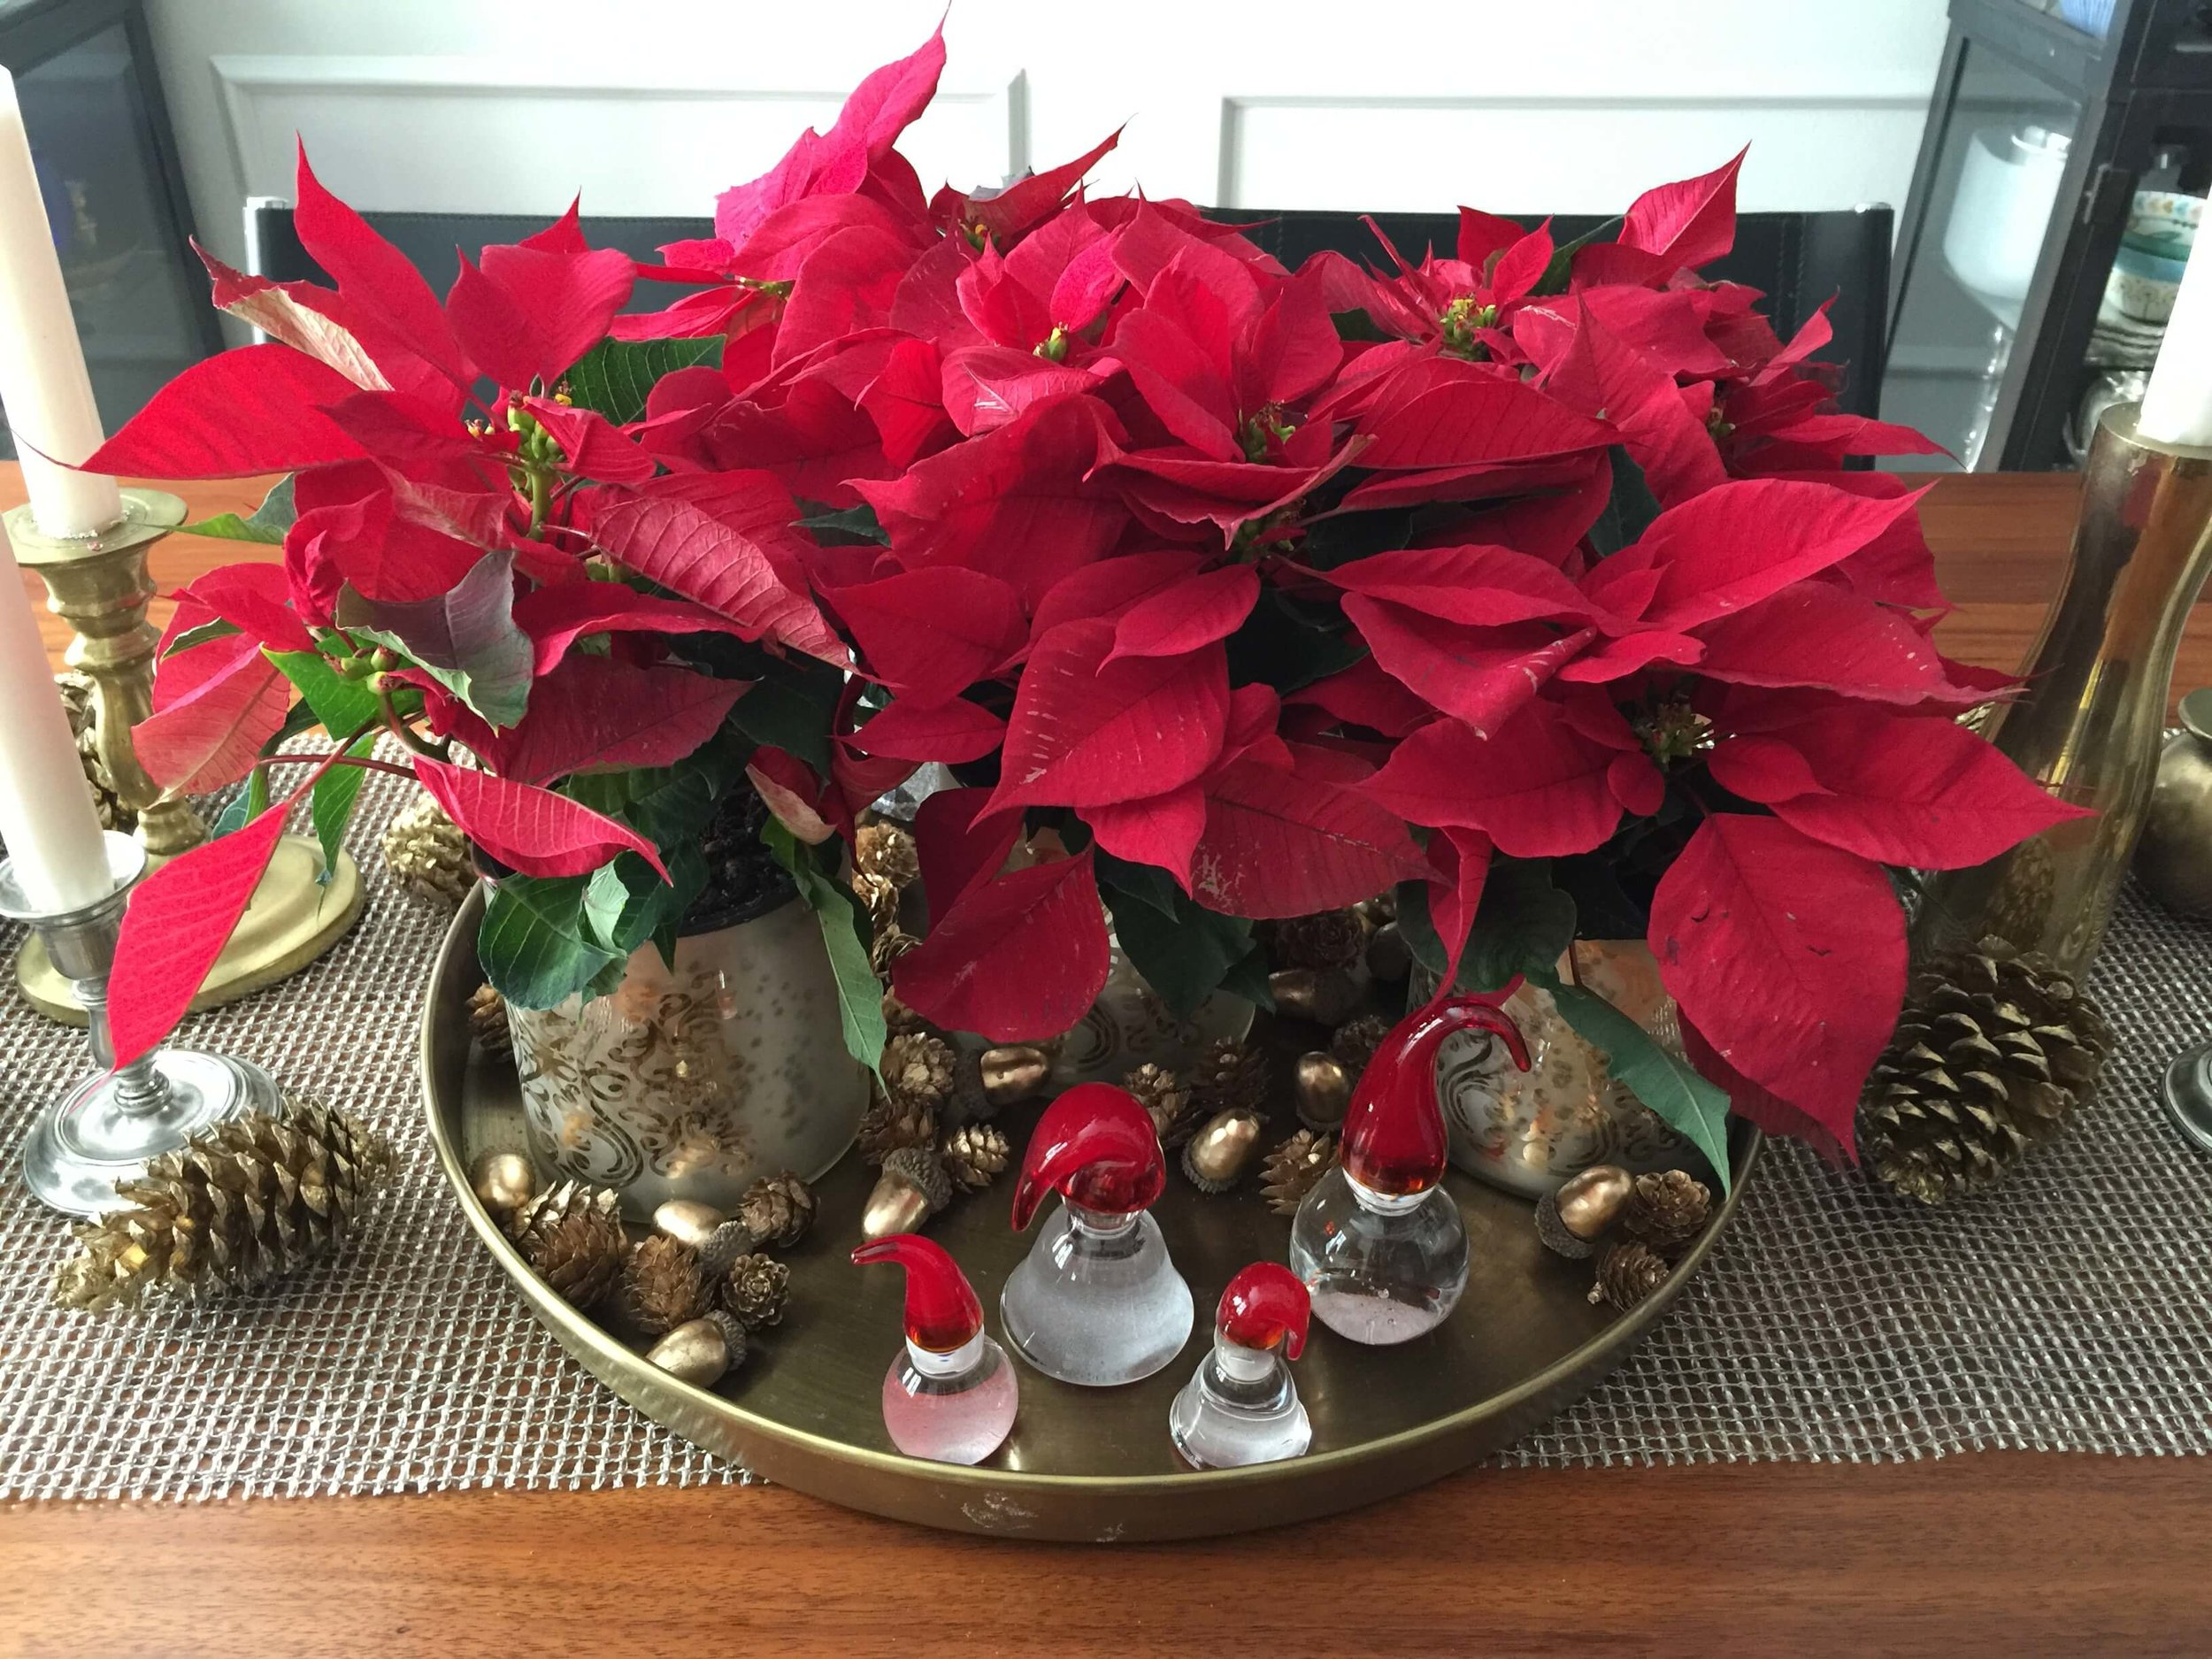 Christmas tabletop centerpiece with poinsettias